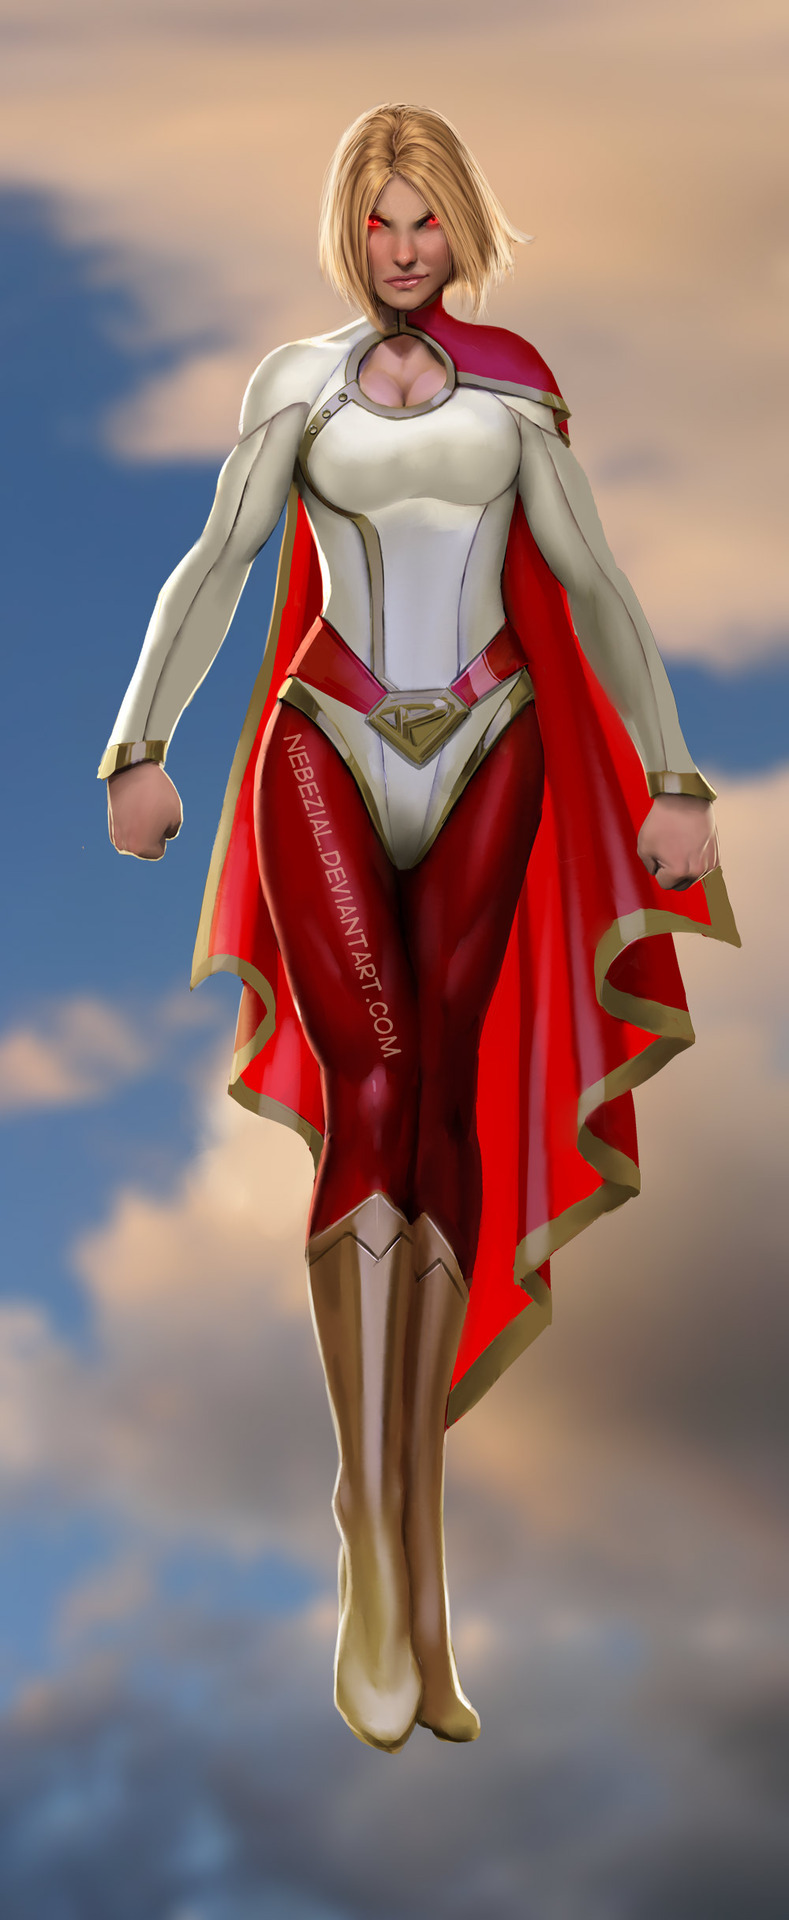 Just a Simple Power Girl by Stjepan Sejic